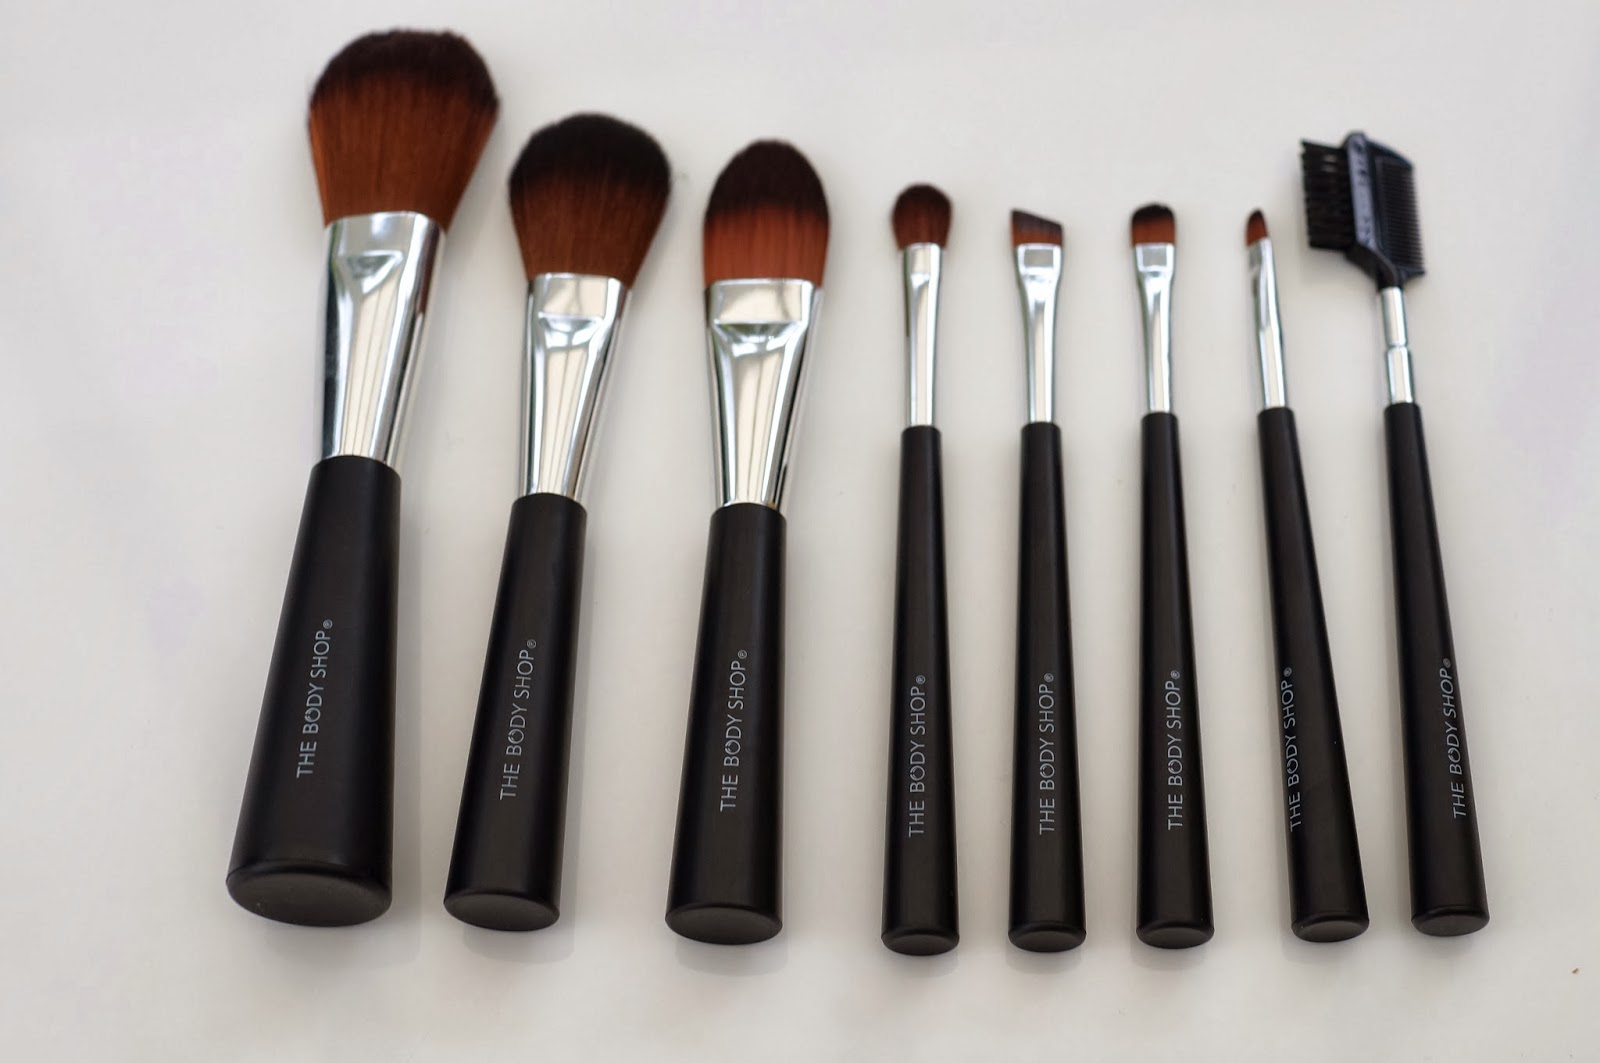 the body shop make up brushes